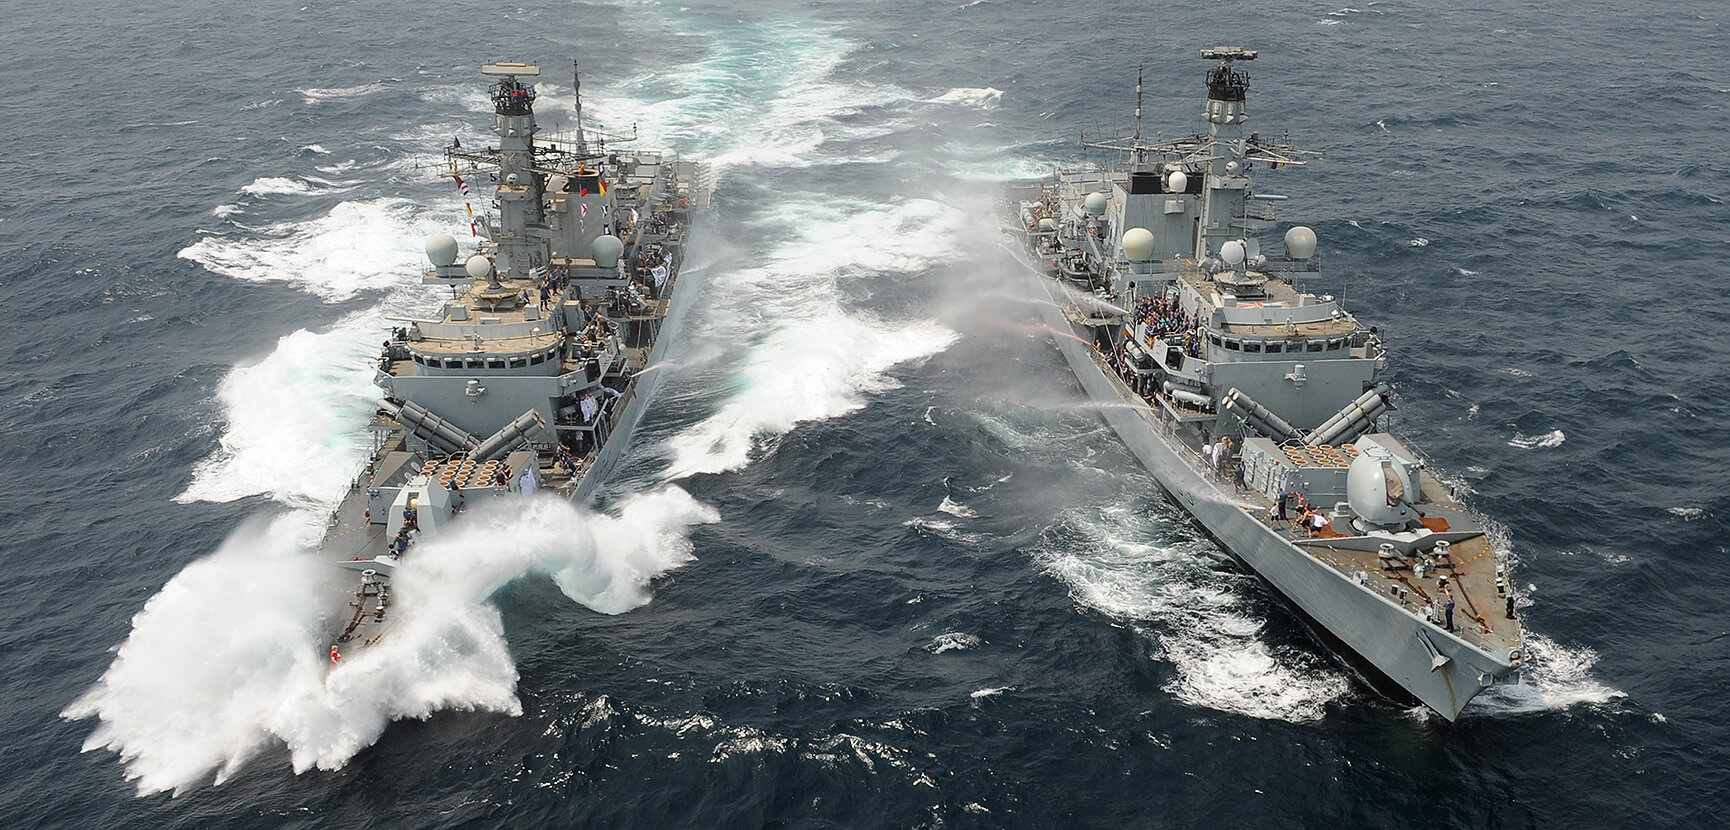 HMS Iron Duke and HMS St Albans